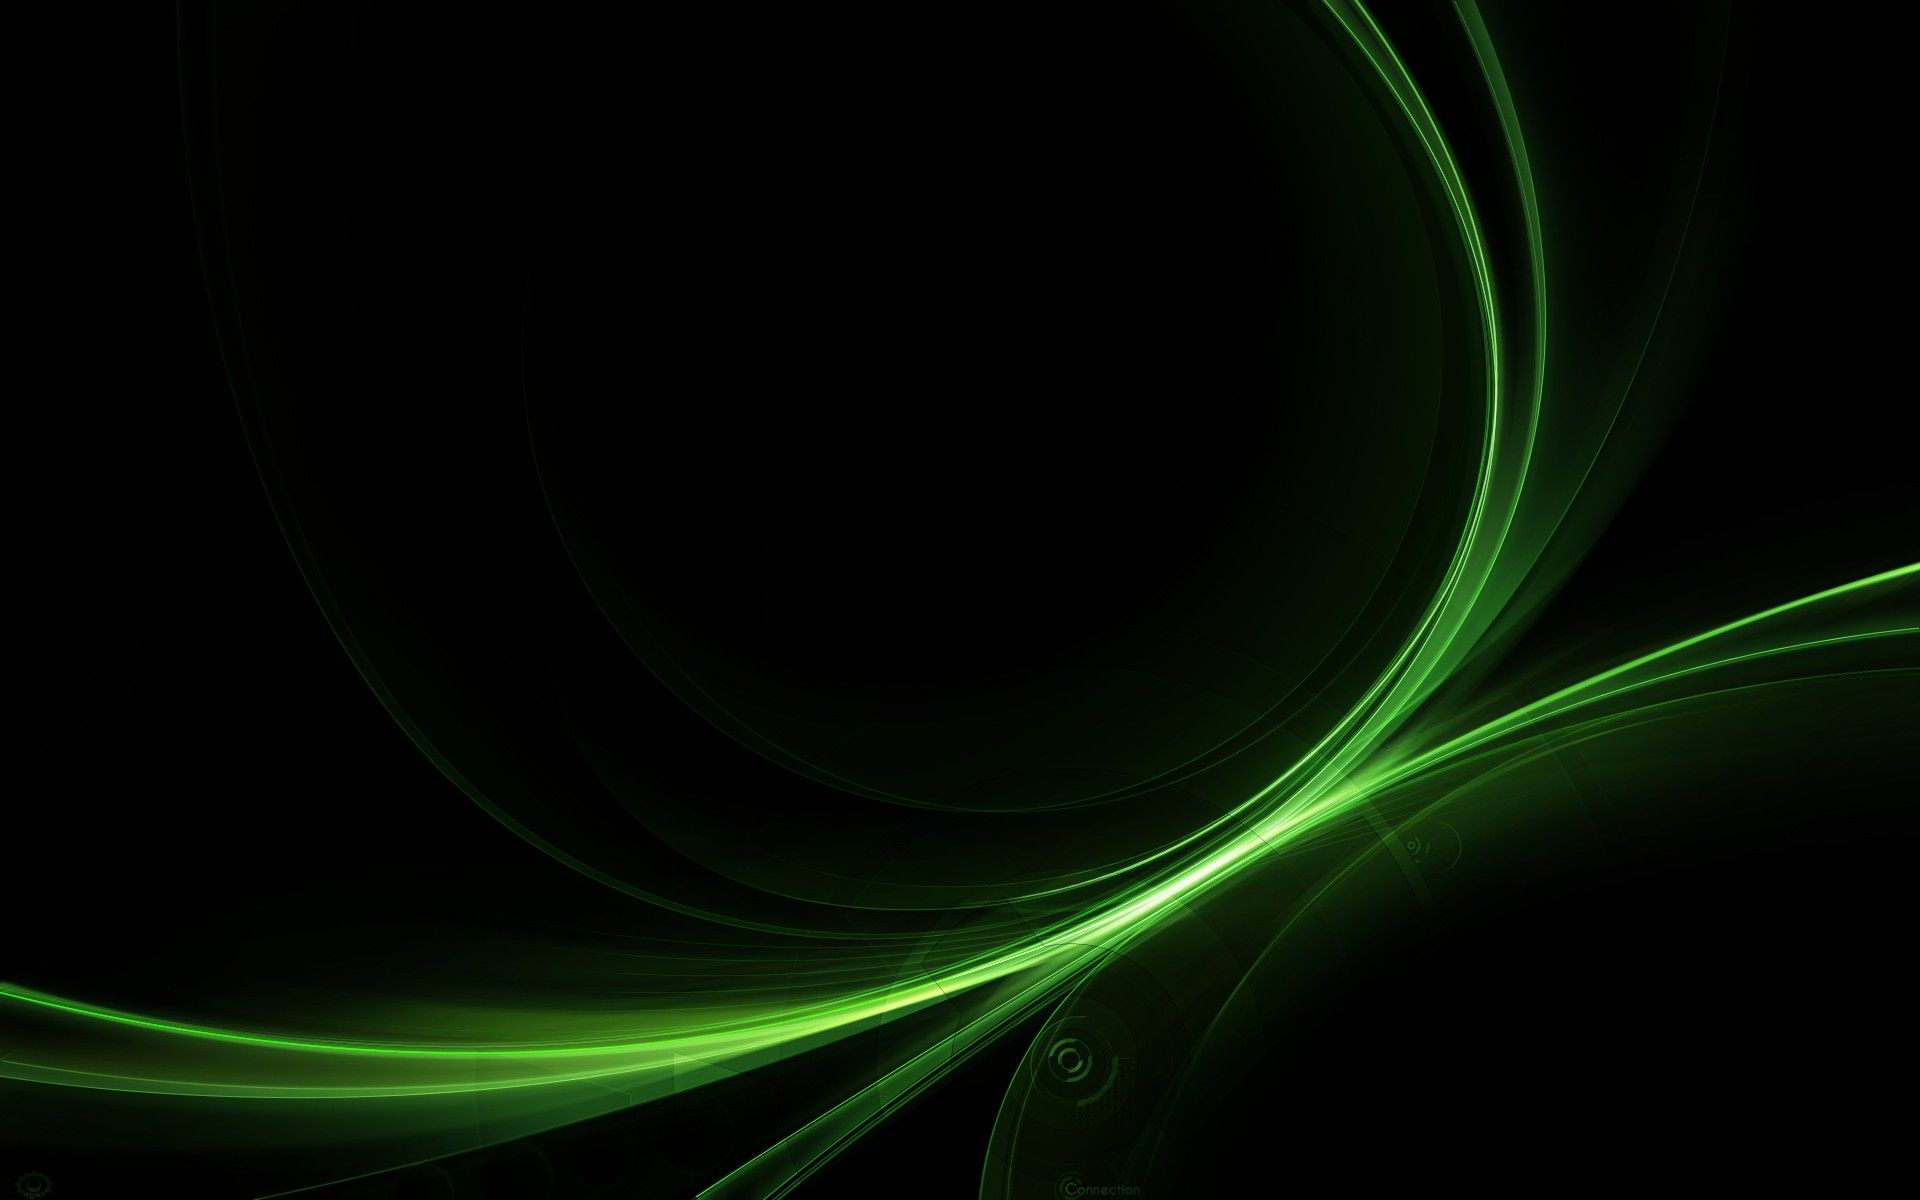 Green Abstract Desktop Wallpapers - Top Free Green ...Green Abstract Wallpaper Hd